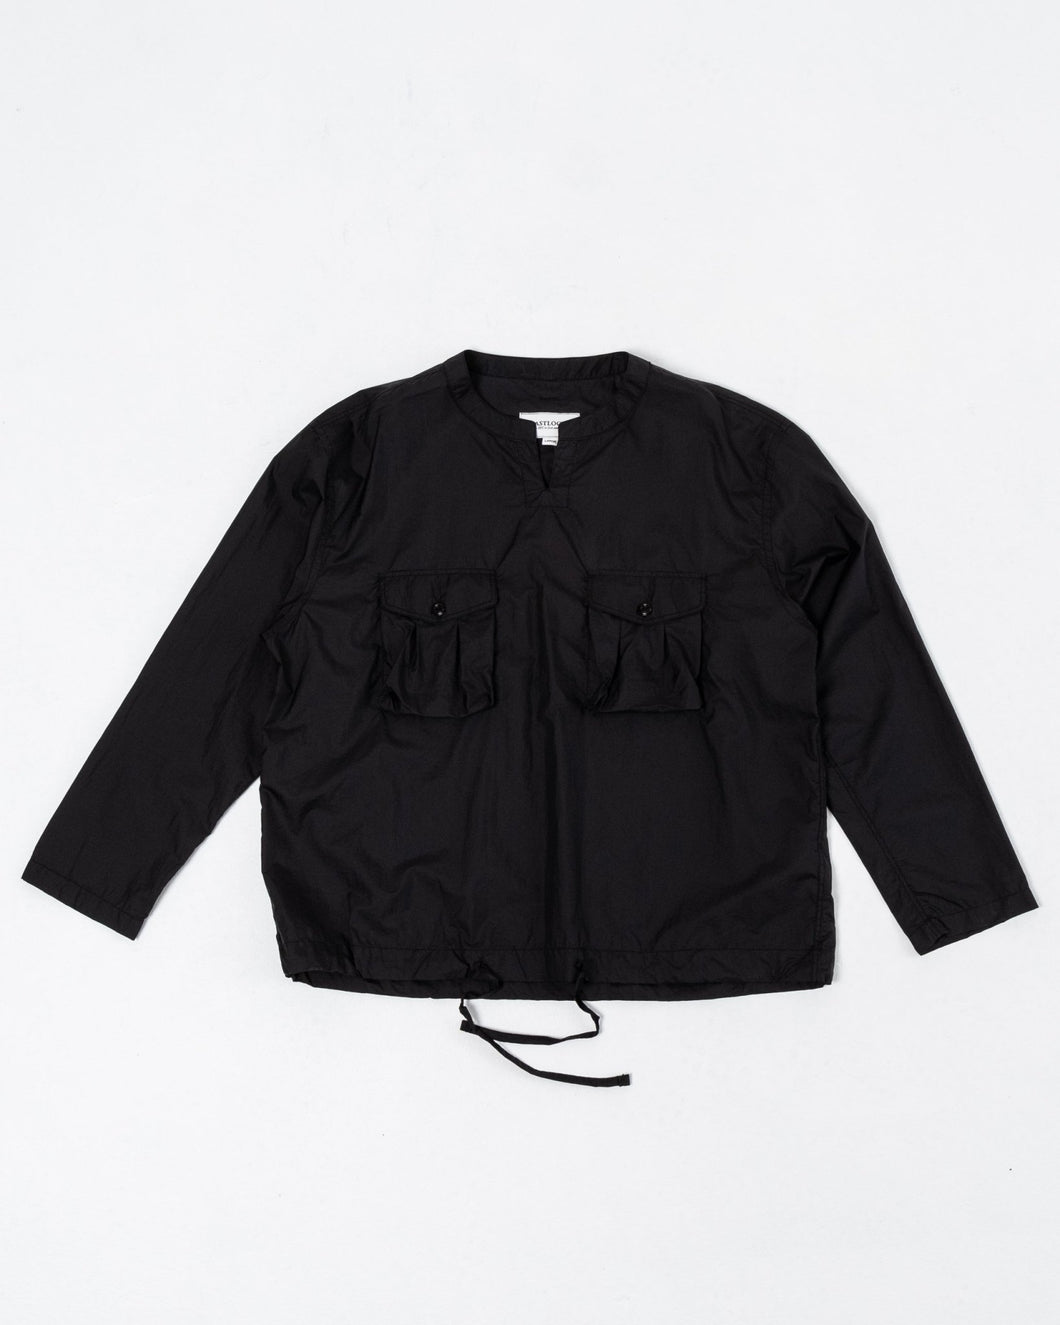 Field Pullover Shirt Black Nylon Ripstop - Meadow of Malmö